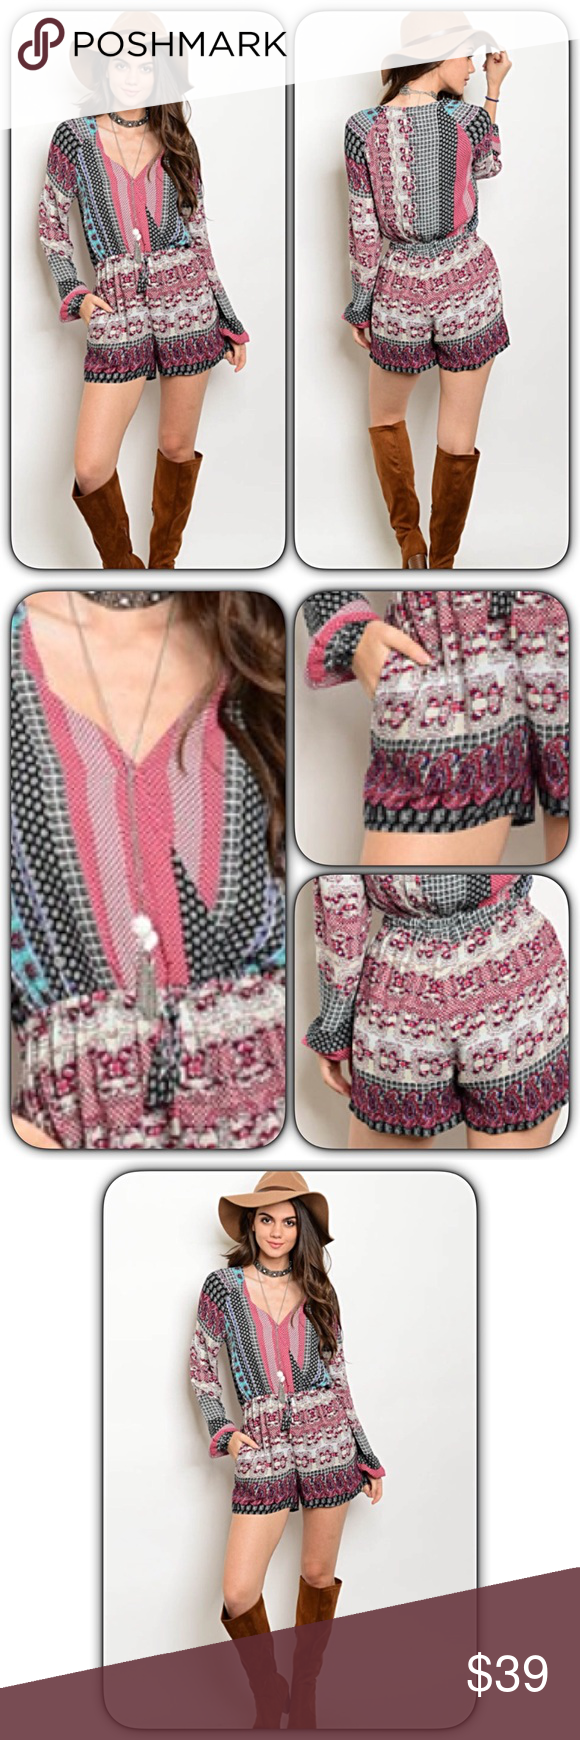 f0d106fba479 Bohemian Chic Surplice Romper SML This romper is a boho chic must have!  Absolutely beautiful